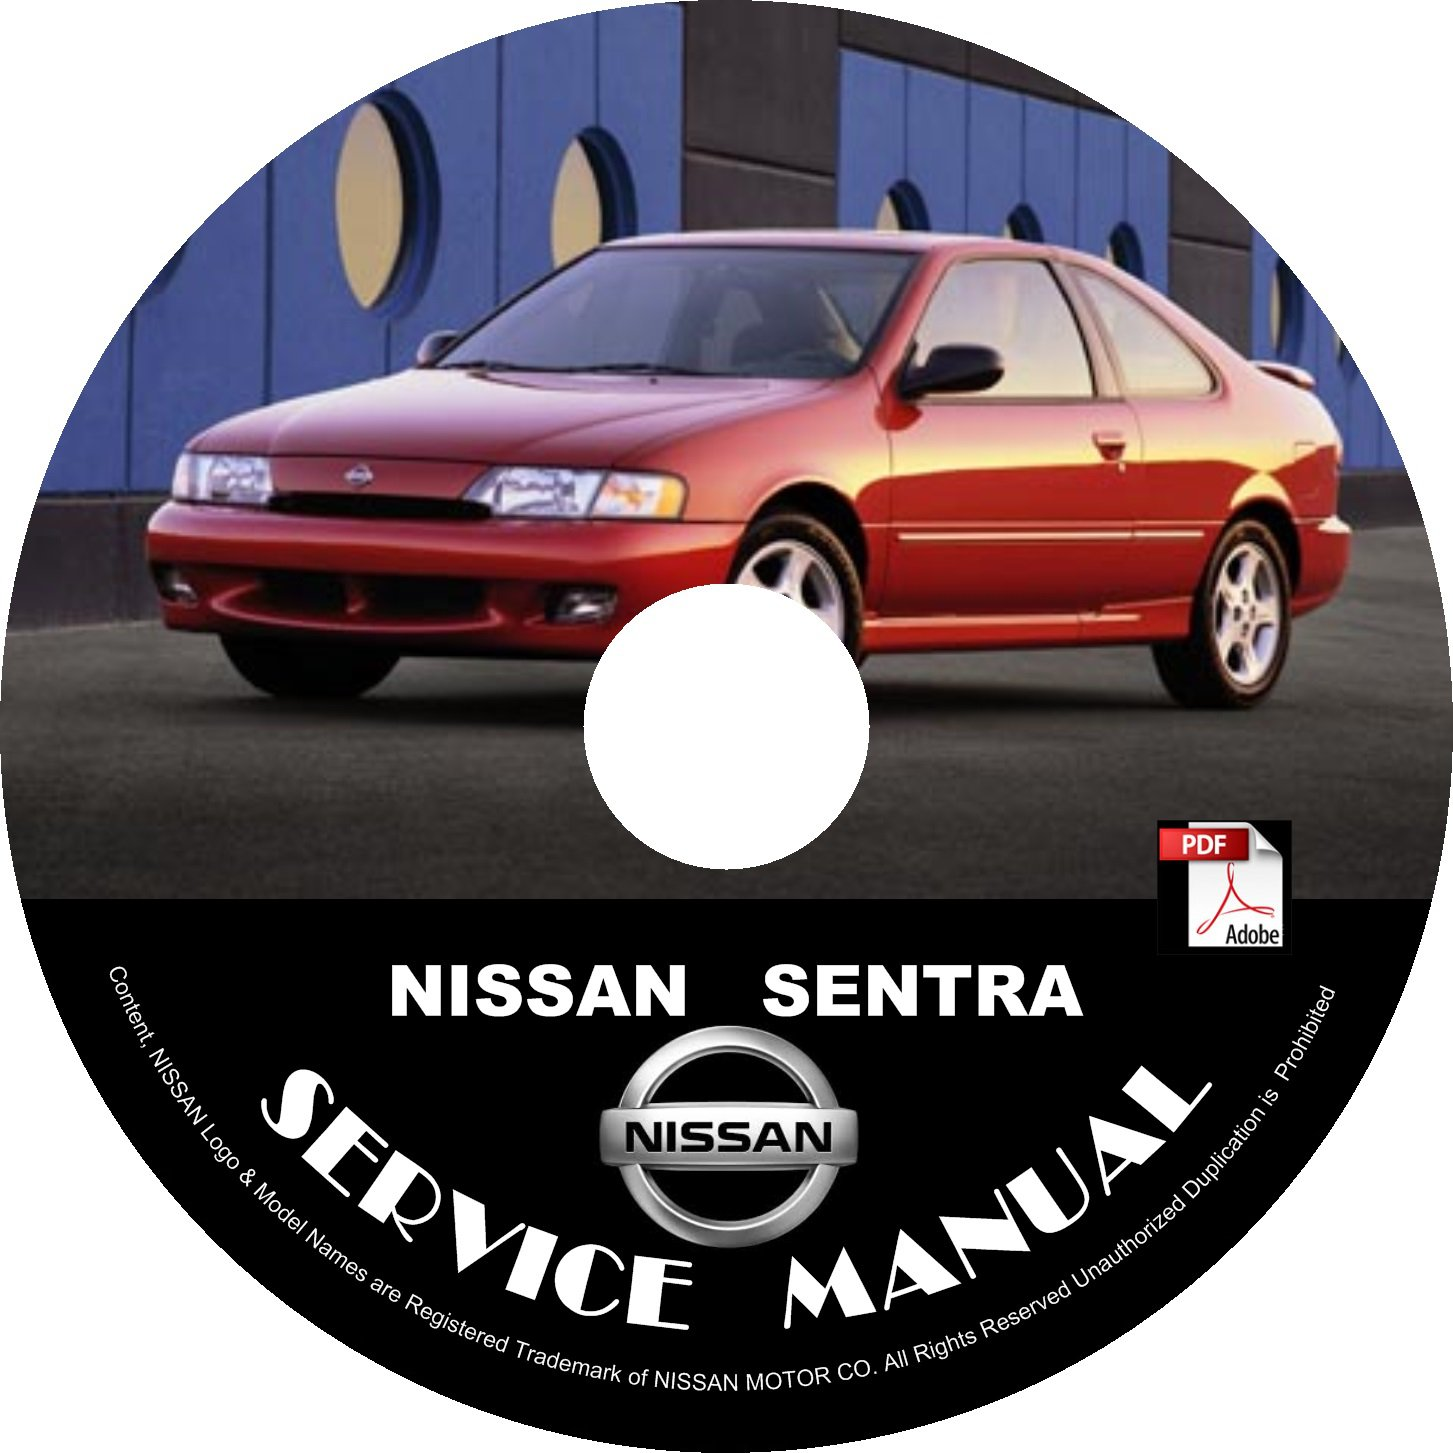 1995 95 Nissan Sentra Factory Service Repair Shop Manual on CD Fix Repair Rebuild 95 Workshop Guide